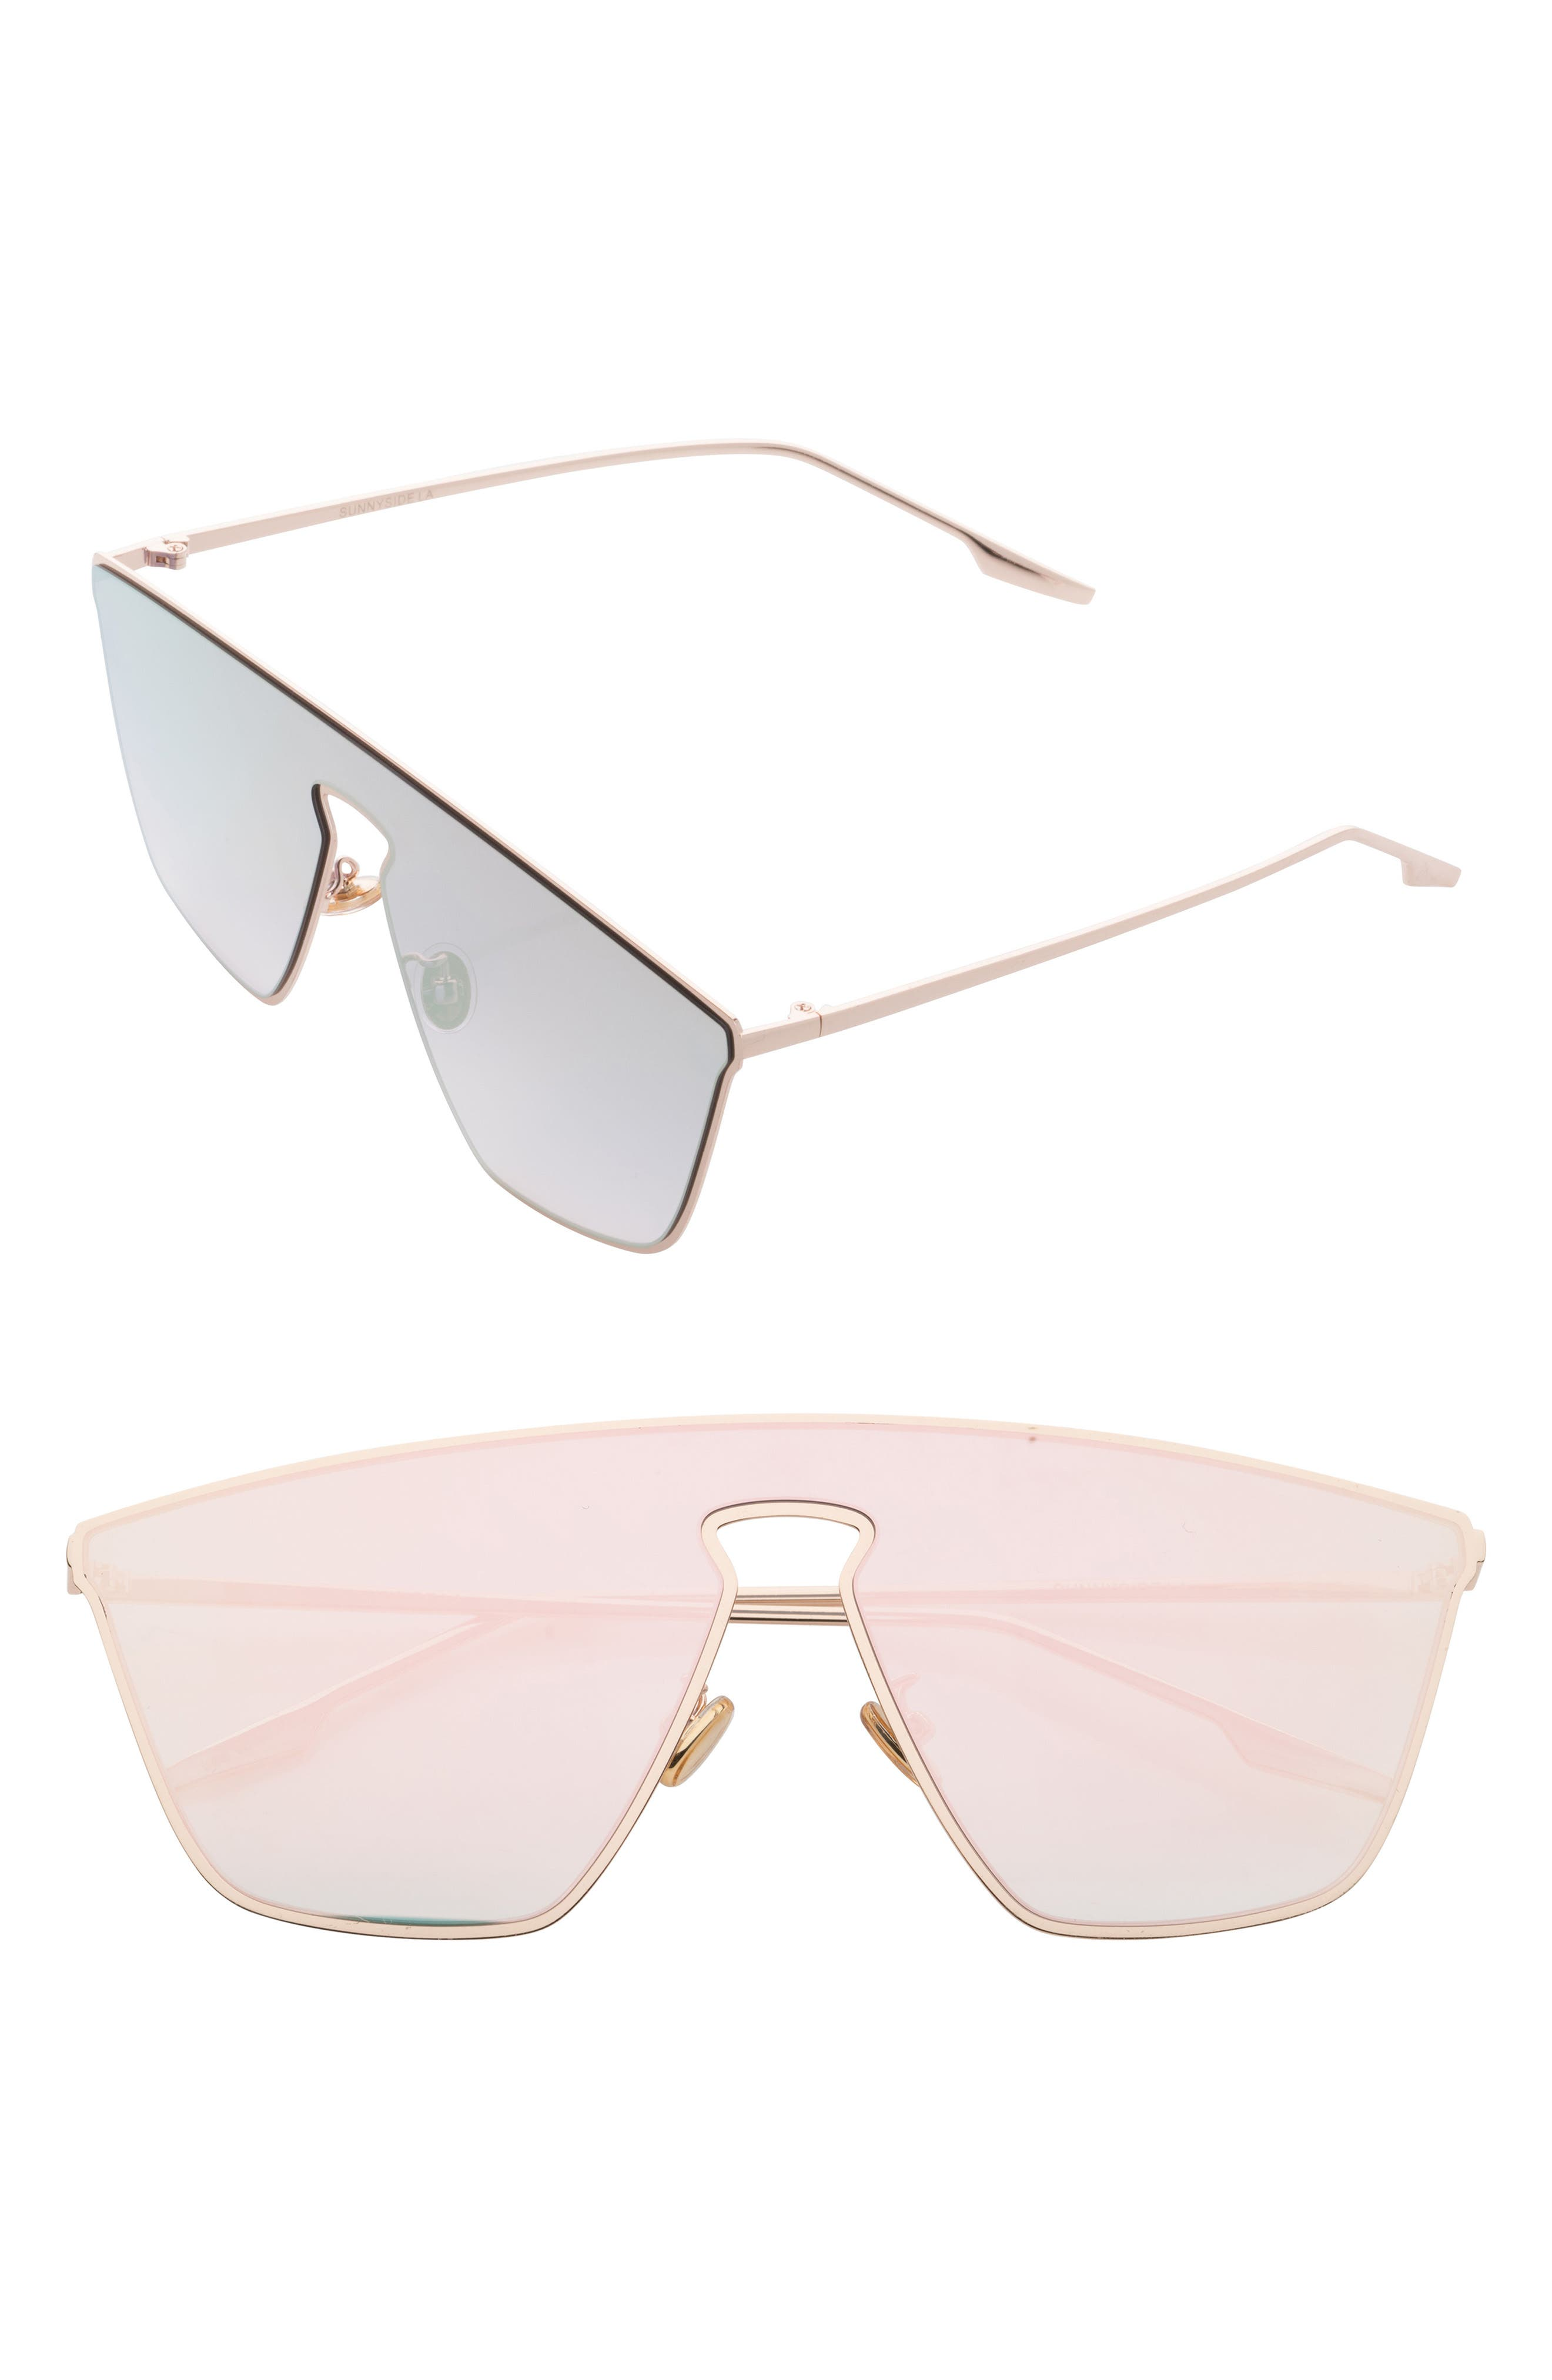 65mm Mirrored Shield Sunglasses,                         Main,                         color, 650